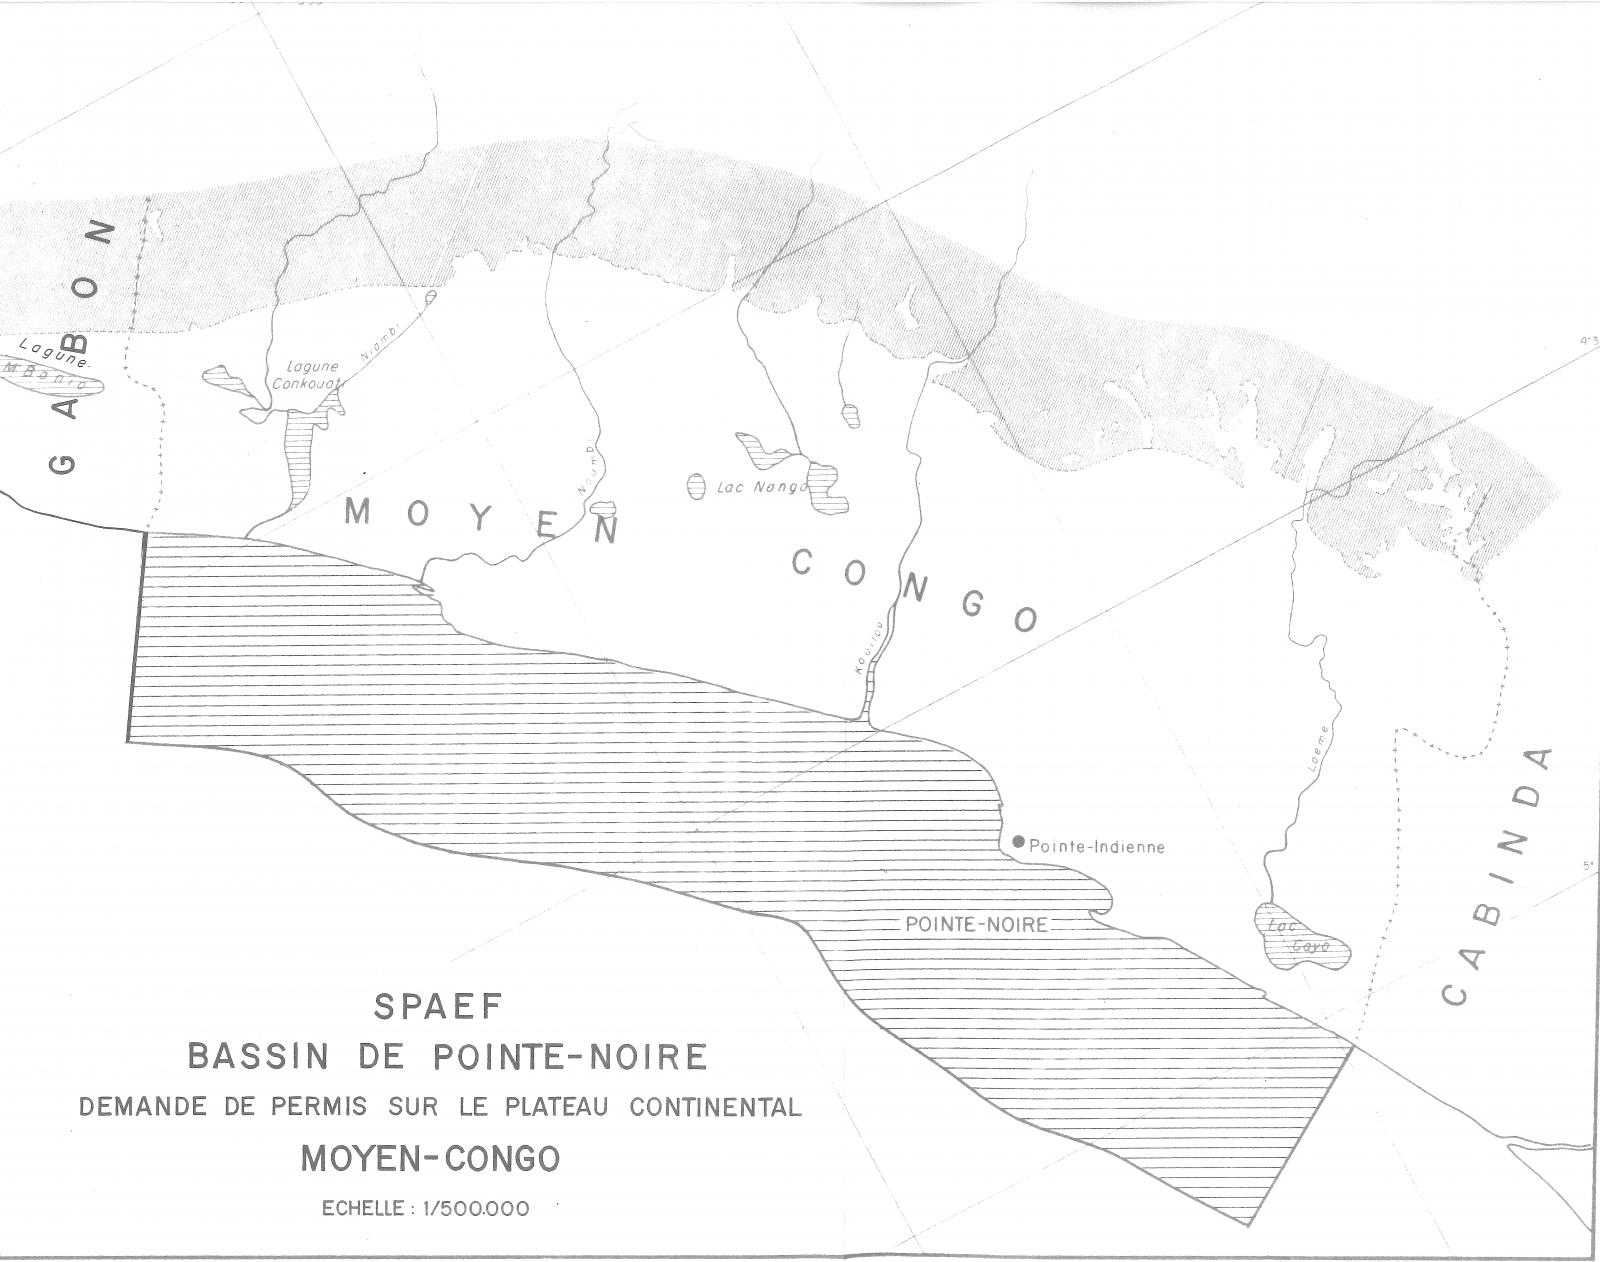 Map of the Pointe Noire Basin